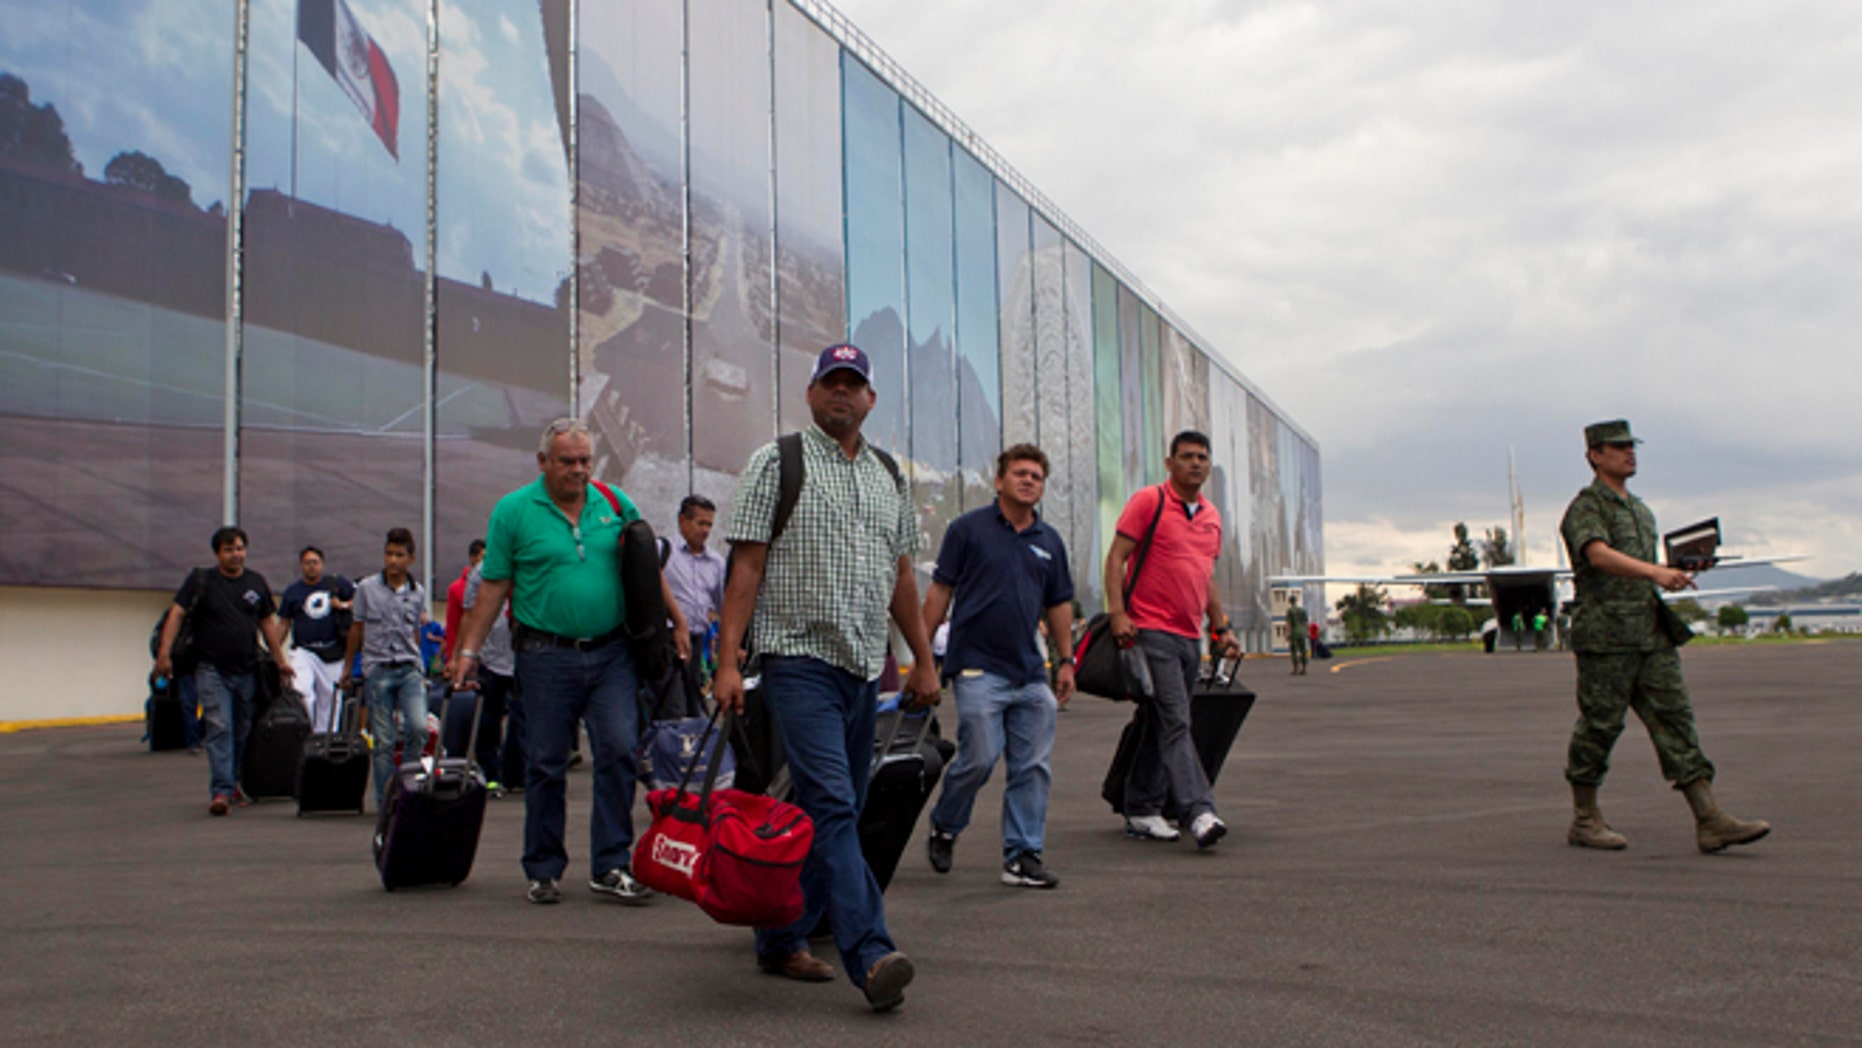 Mexican and foreign tourists arrive at an Air Force hangar in Mexico City after being airlifted out of the hurricane-ravaged resort area of Los Cabos by the Mexican armed forces, in Mexico City, Tuesday, Sept. 16, 2014. Travelers are being flown free of charge to airports in Tijuana, Mazatlan, Guadalajara and Mexico City to catch connecting flights and, in the case of foreigners, receive consular assistance. (AP Photo/Christian Palma)